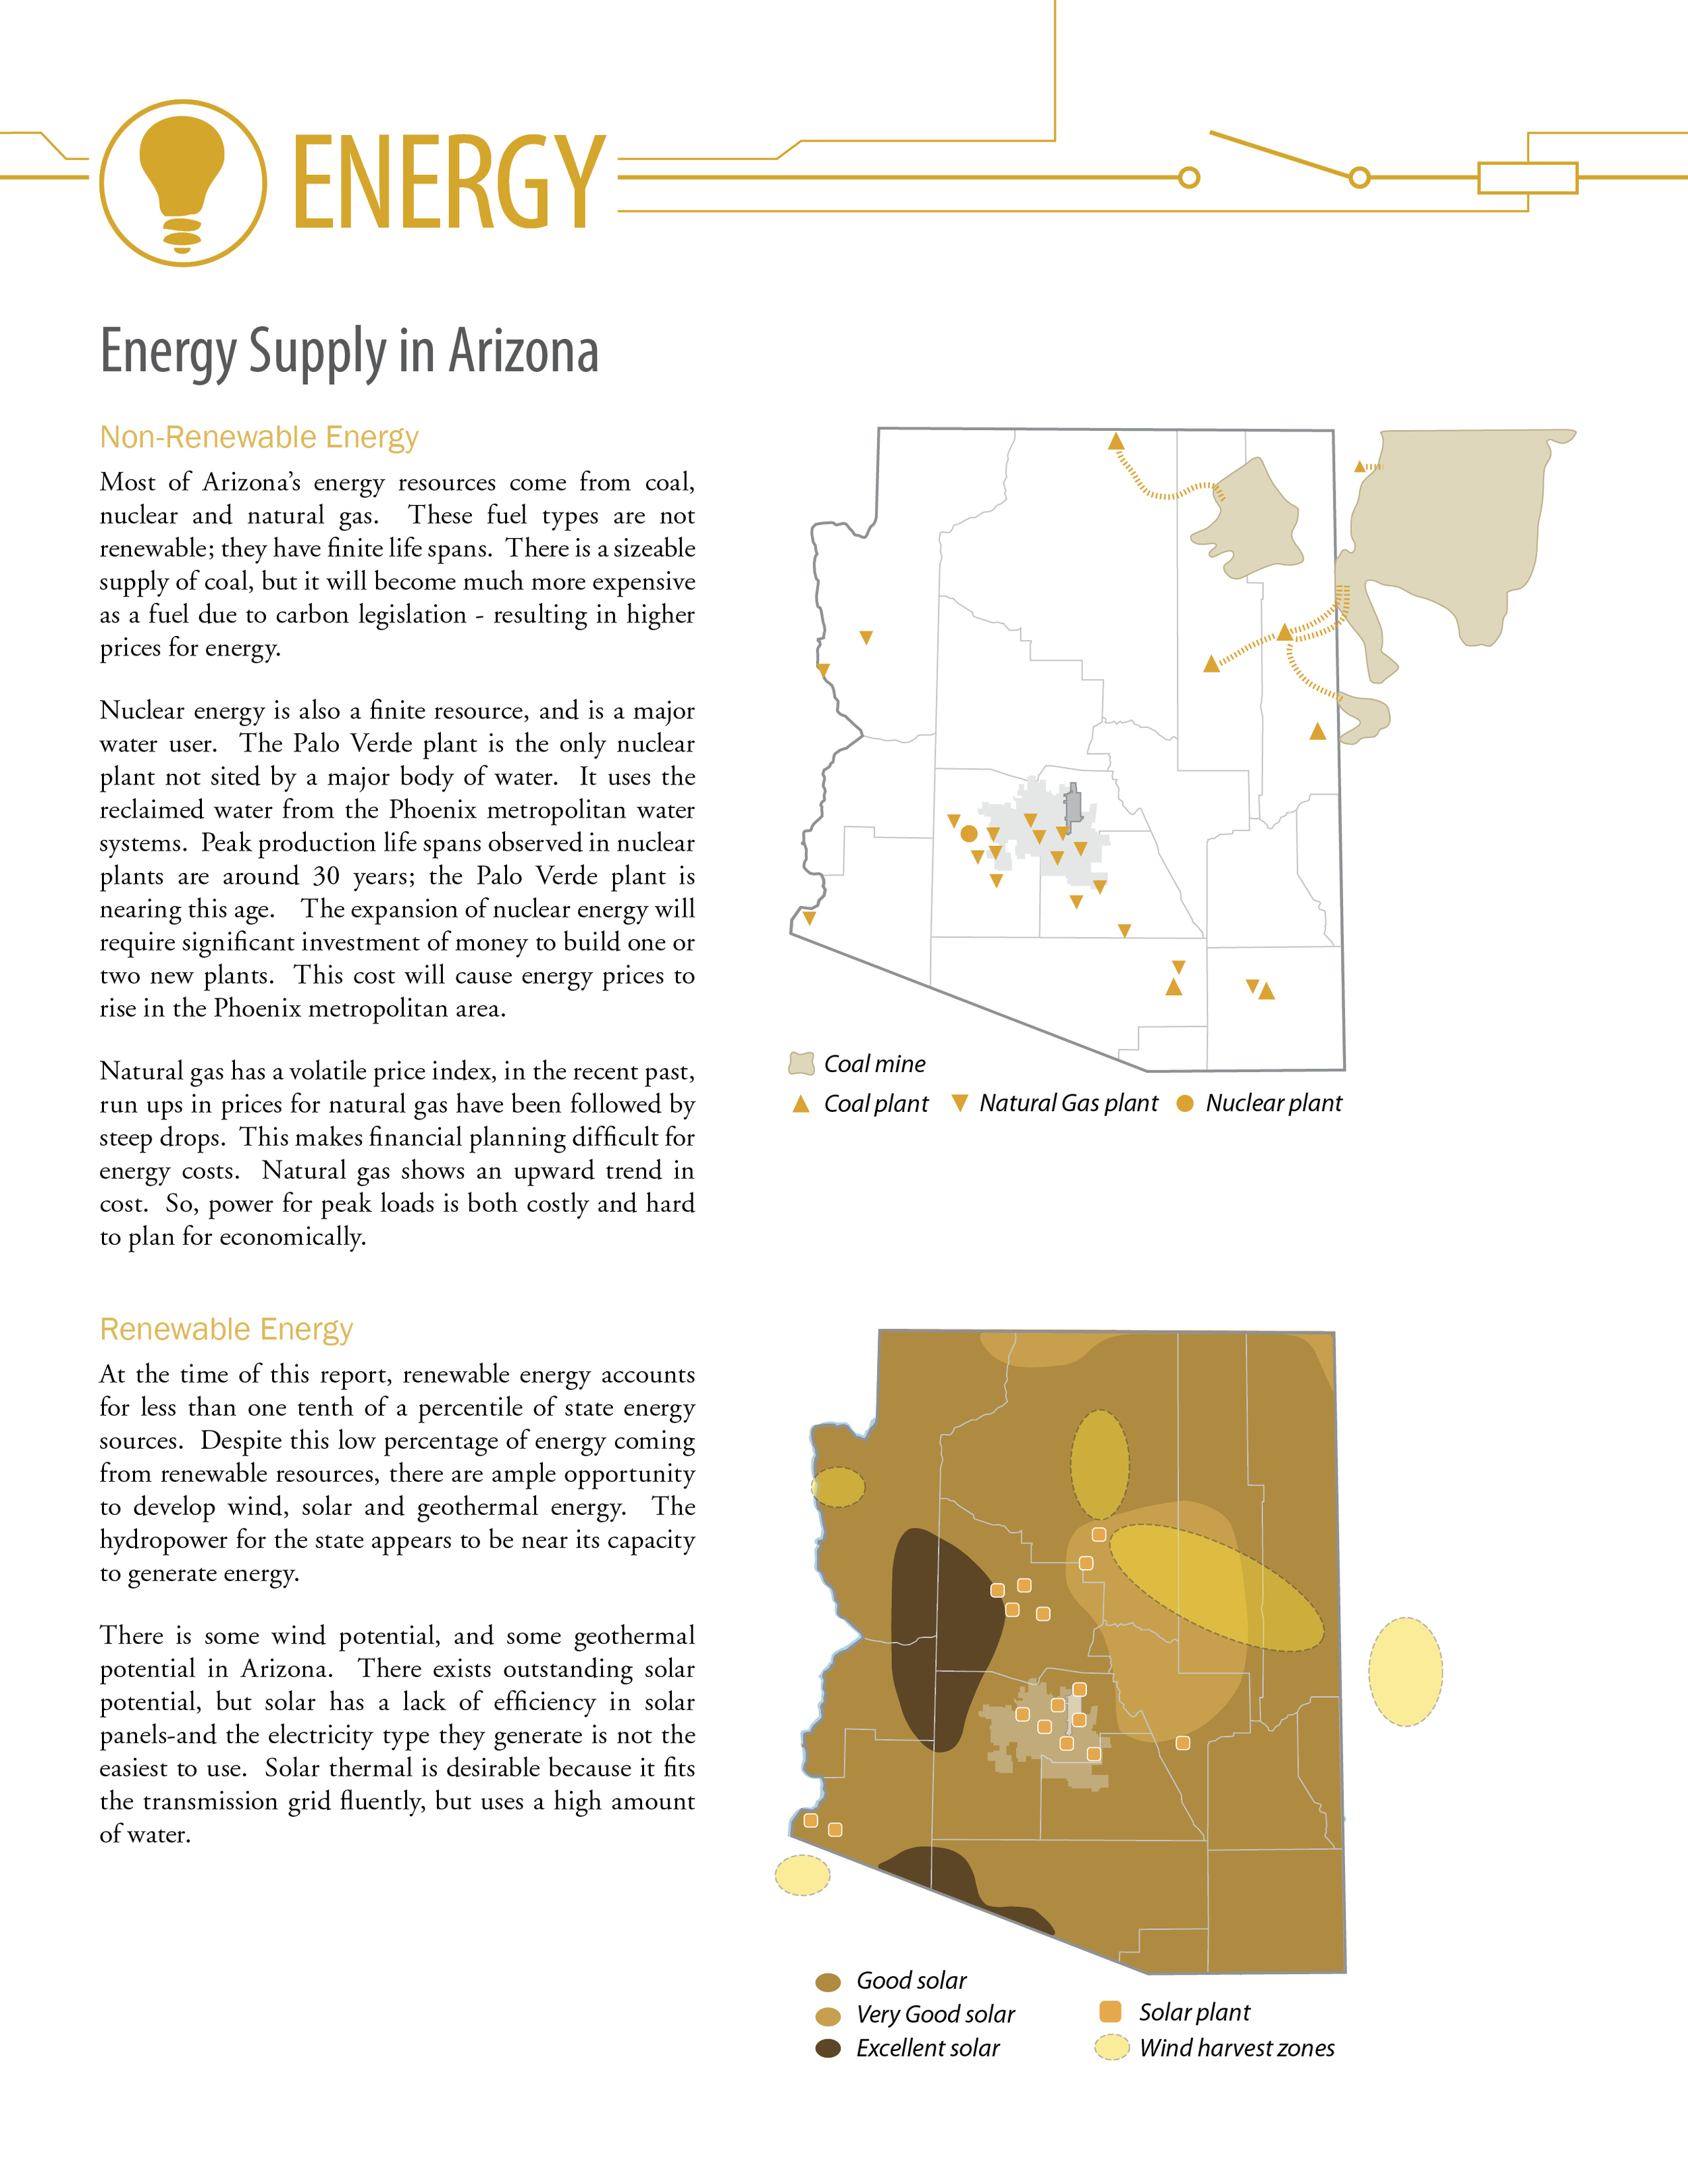 Energy mapped in Arizona; 99% of the energy supply is fossil fuel based, and 1% is renewable.